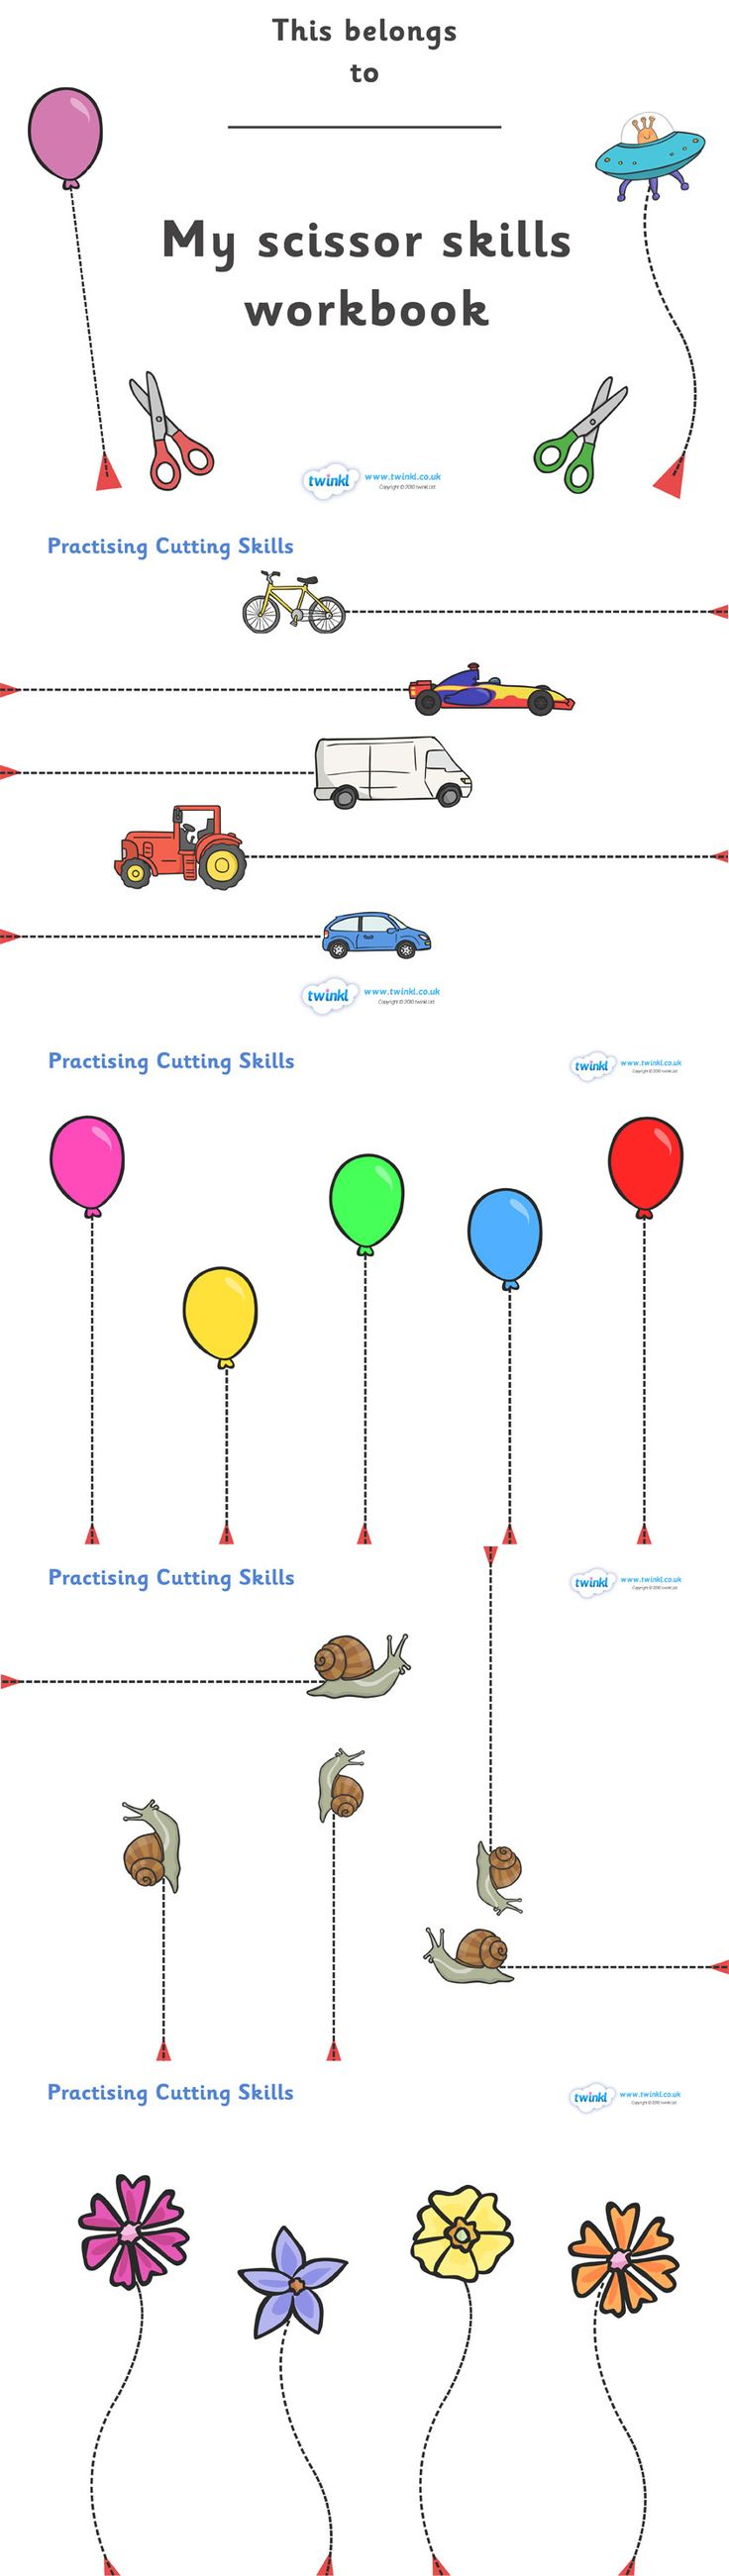 worksheet Scissor Skills Worksheets best 25 cutting activities ideas on pinterest scissor practice twinkl resources skills workbook thousands of printable primary teaching resources